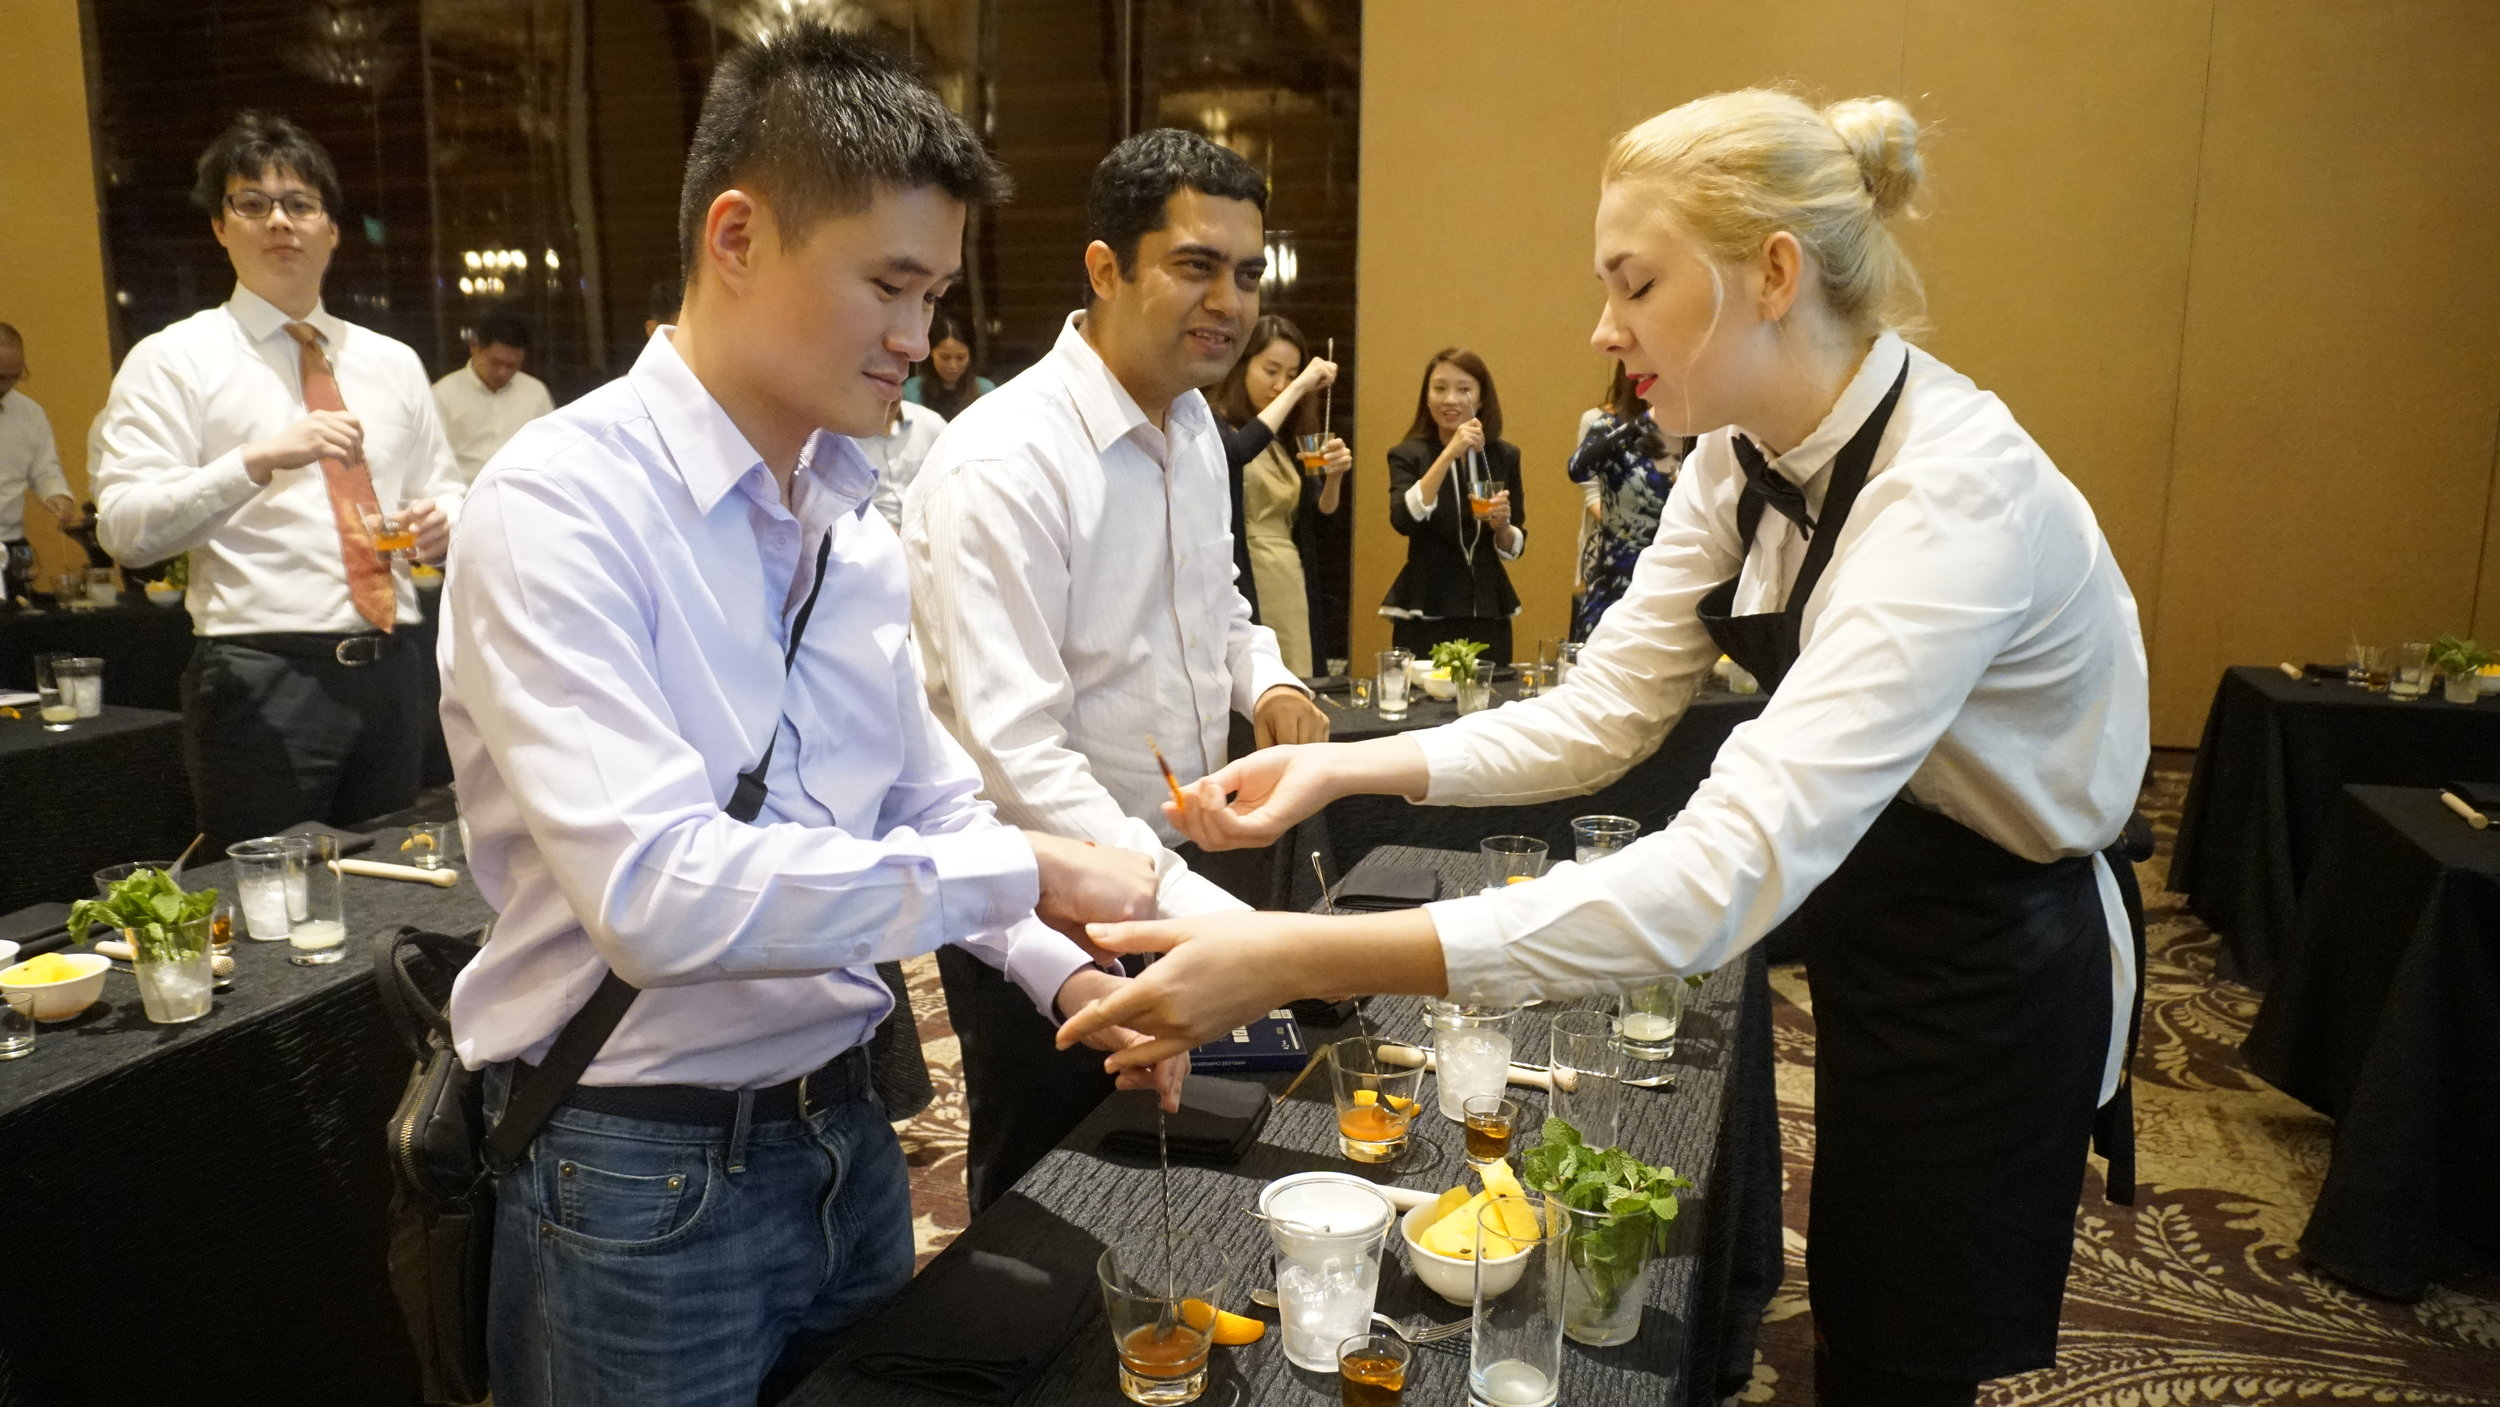 StRegis_Scholar_Mixology_Workshop_0014.JPG